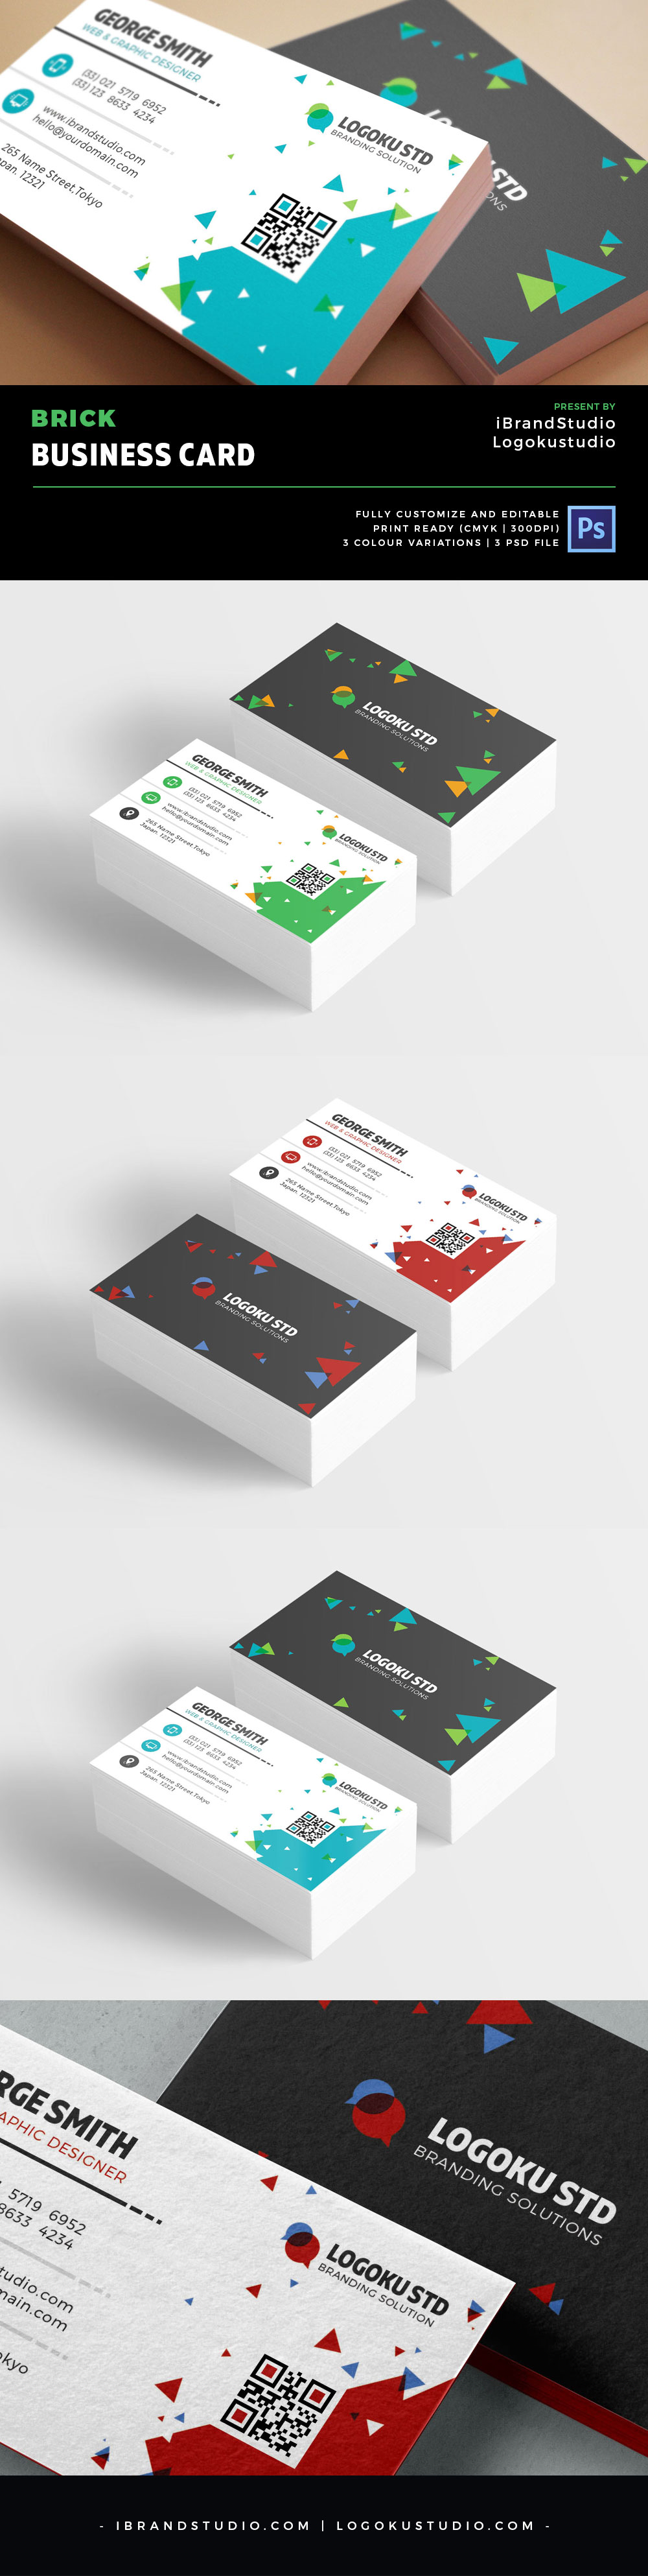 Free Brick Business Card Template